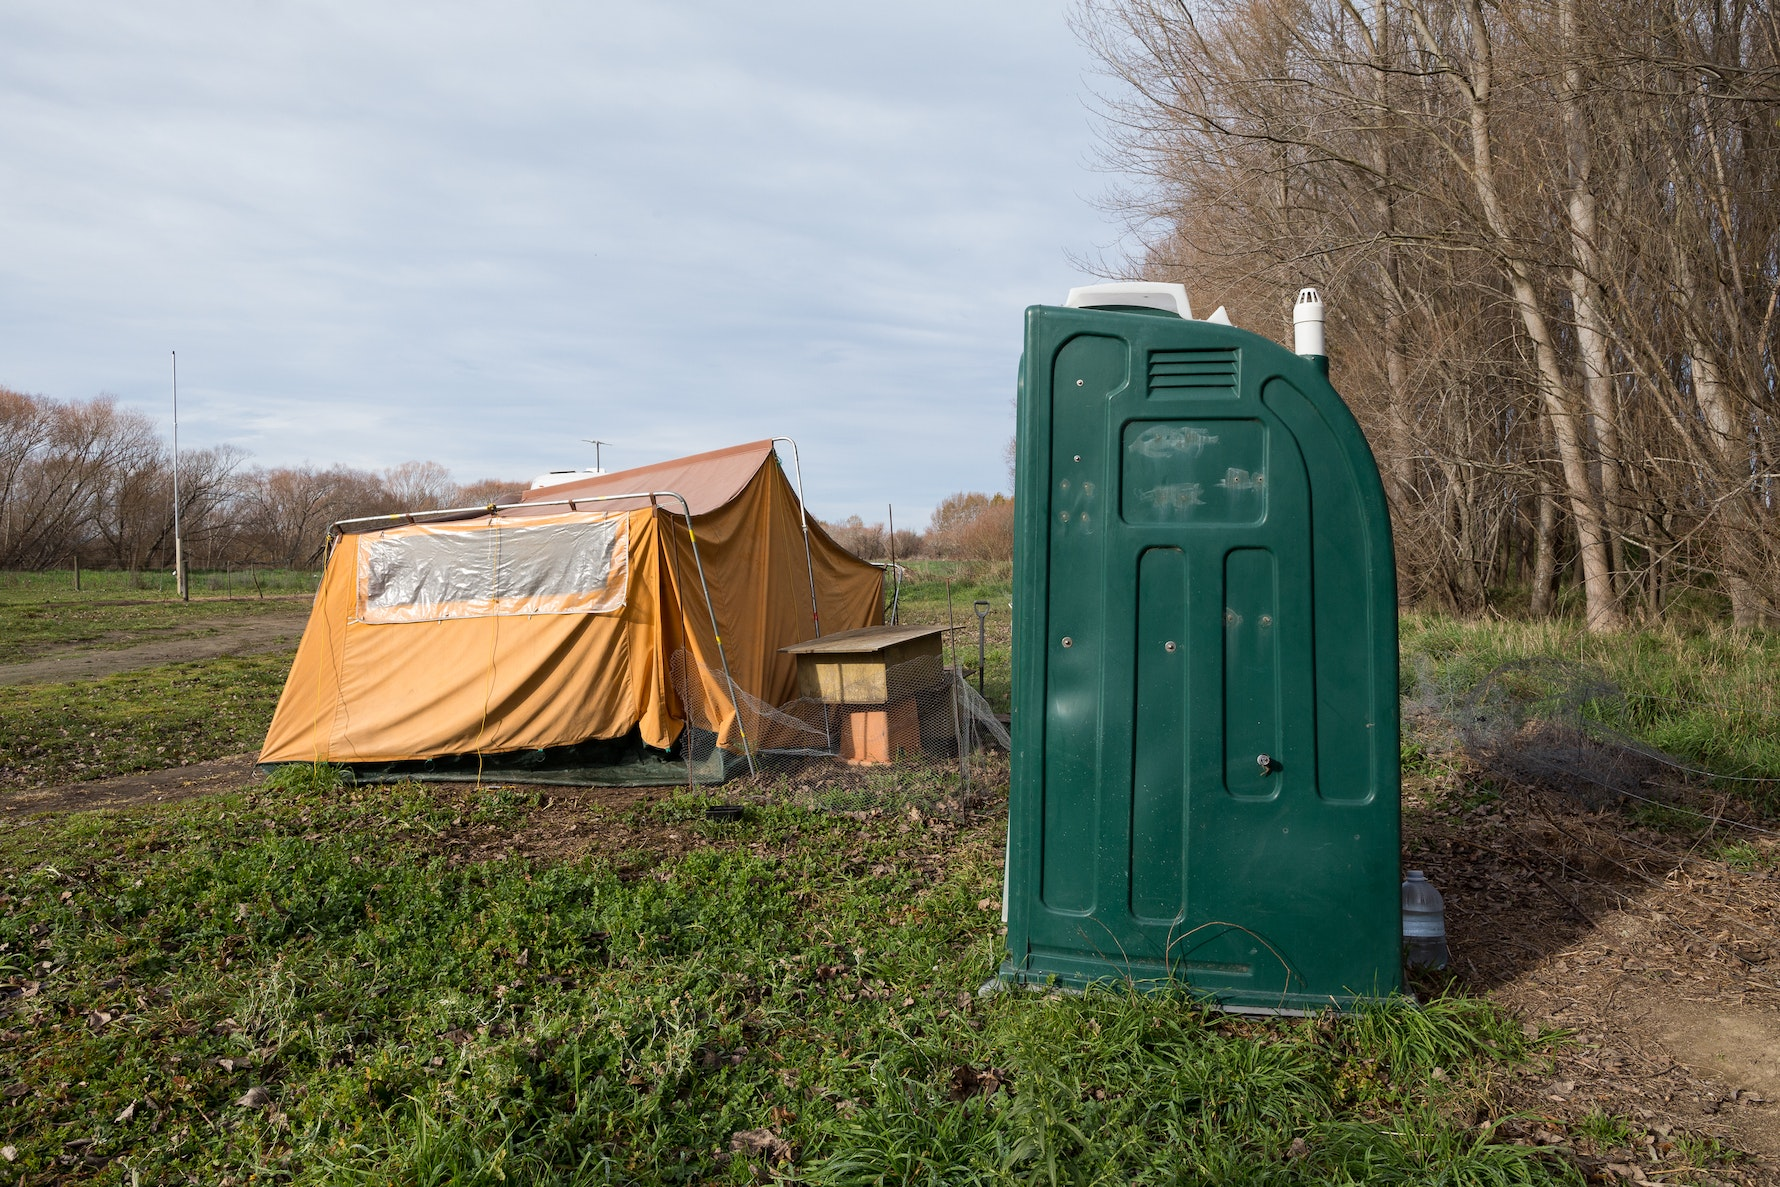 Portaloo, Coes Ford